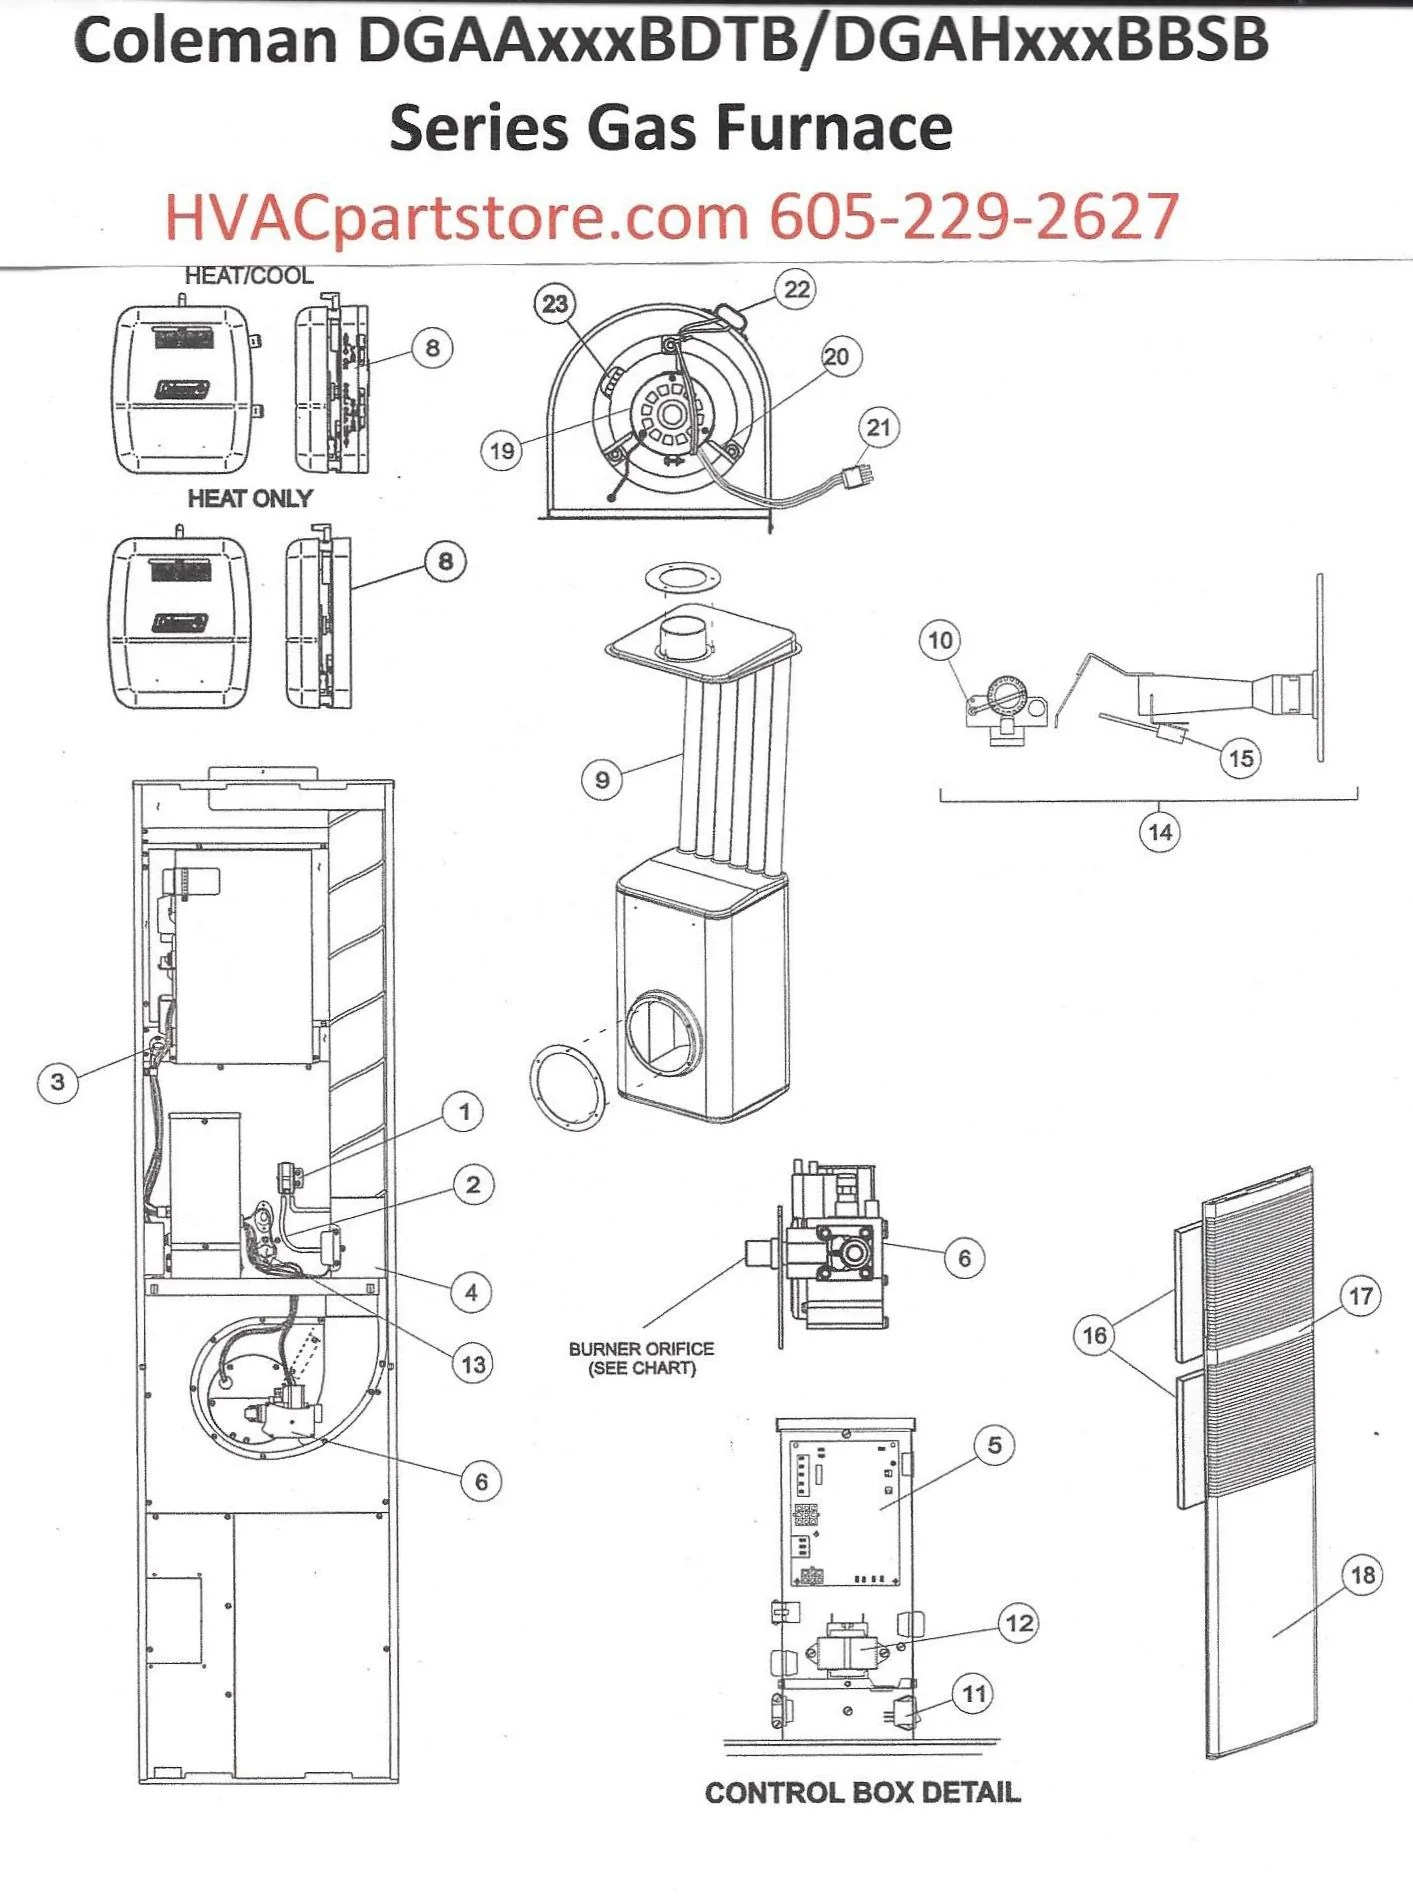 click here to view a manual for the dgaa077bdtb which includes wiring diagrams  [ 1413 x 1903 Pixel ]